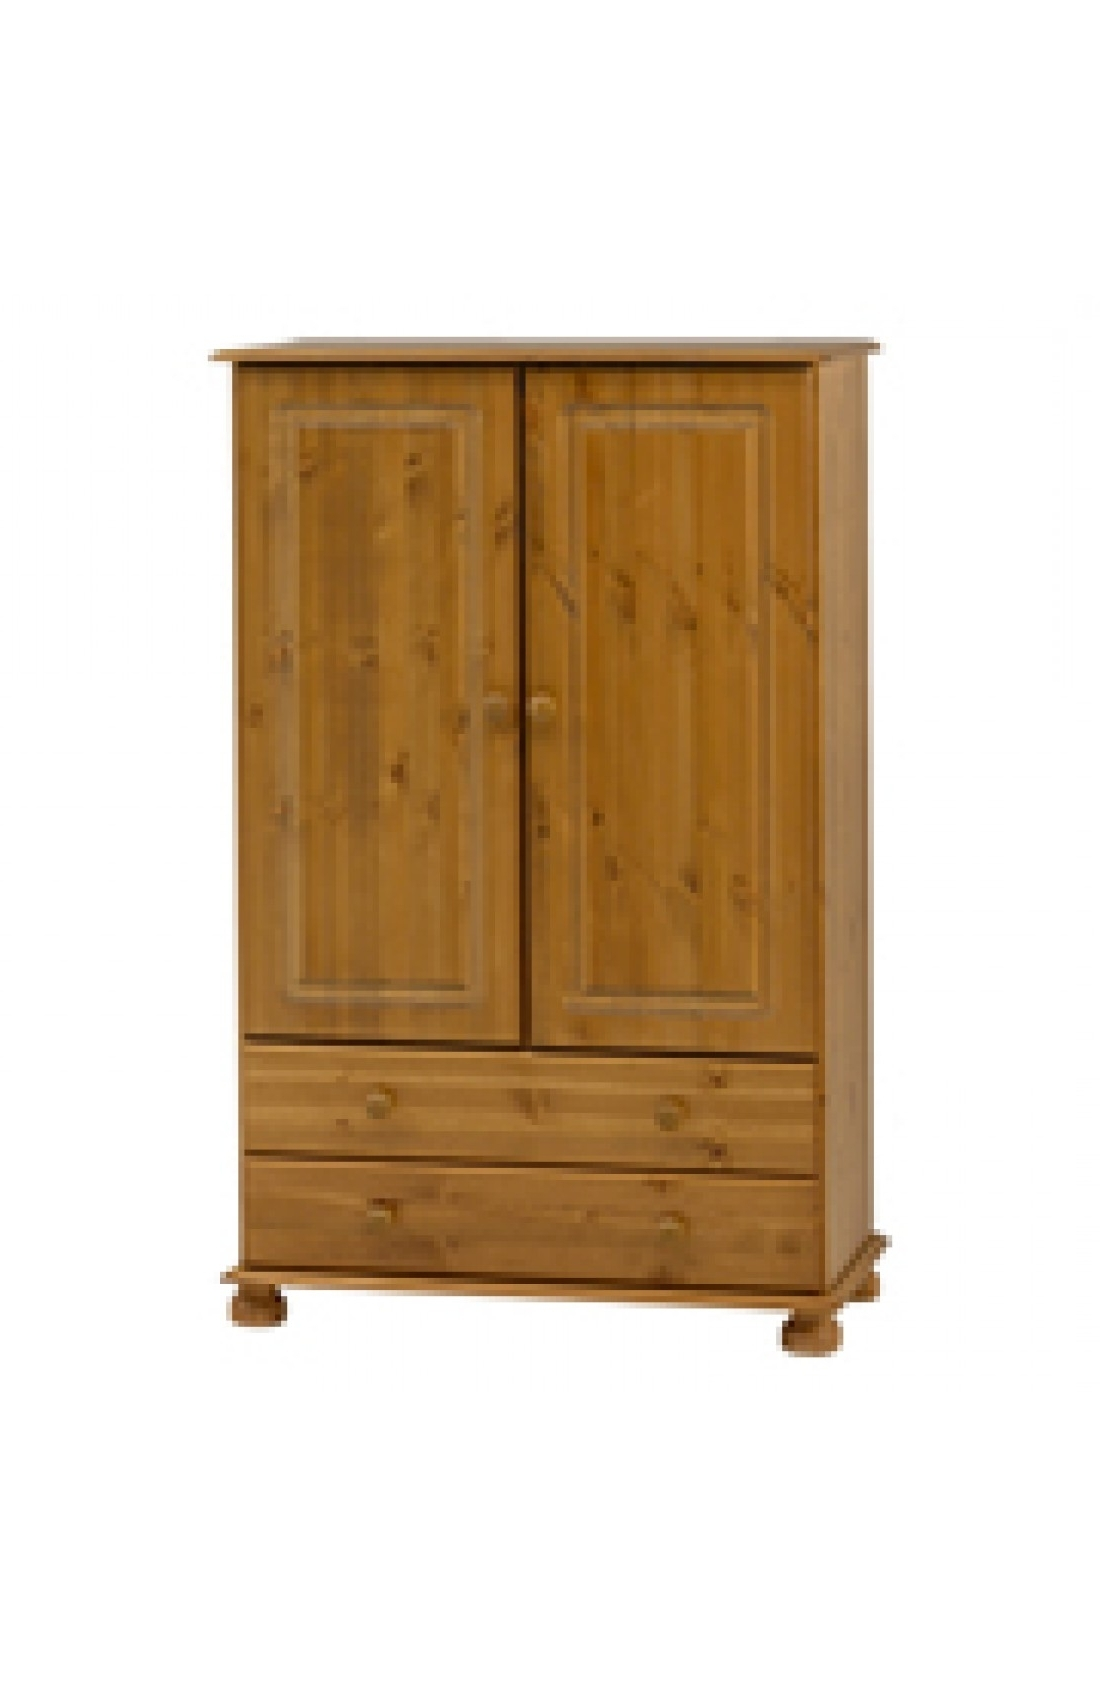 Natural Pine Wardrobes Regarding Preferred Richmond 2 Door 2 Drawer Short Low Tallboy Wardrobe – Pine (View 8 of 15)